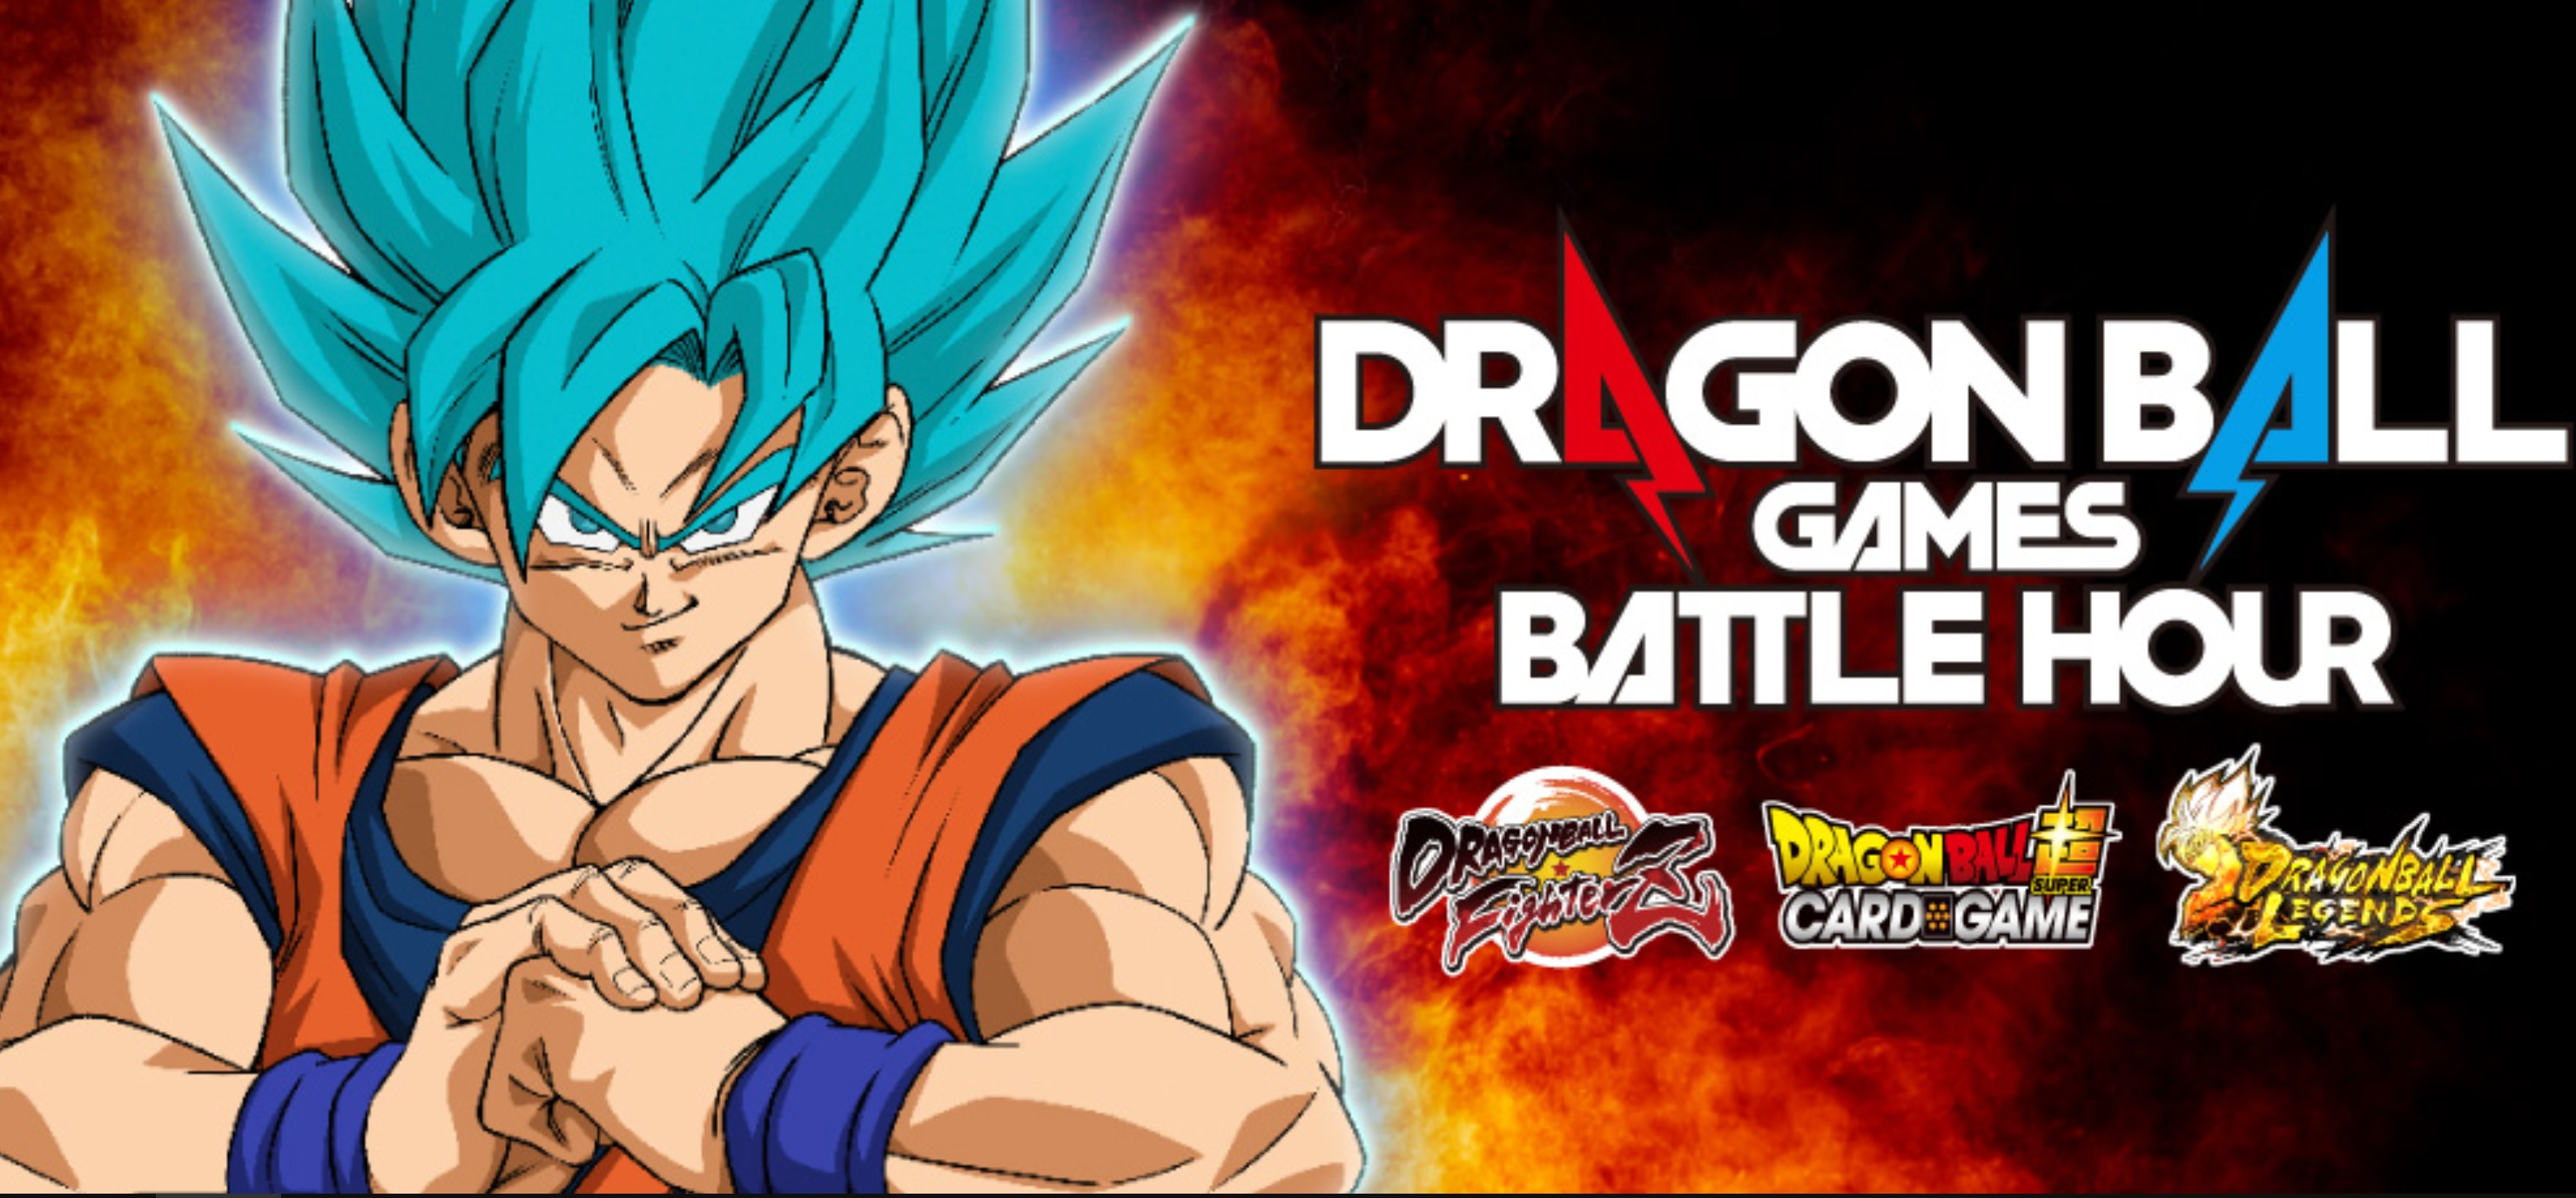 DRAGON BALL GAMES BATTLE HOUR - ANNUNCIATO L